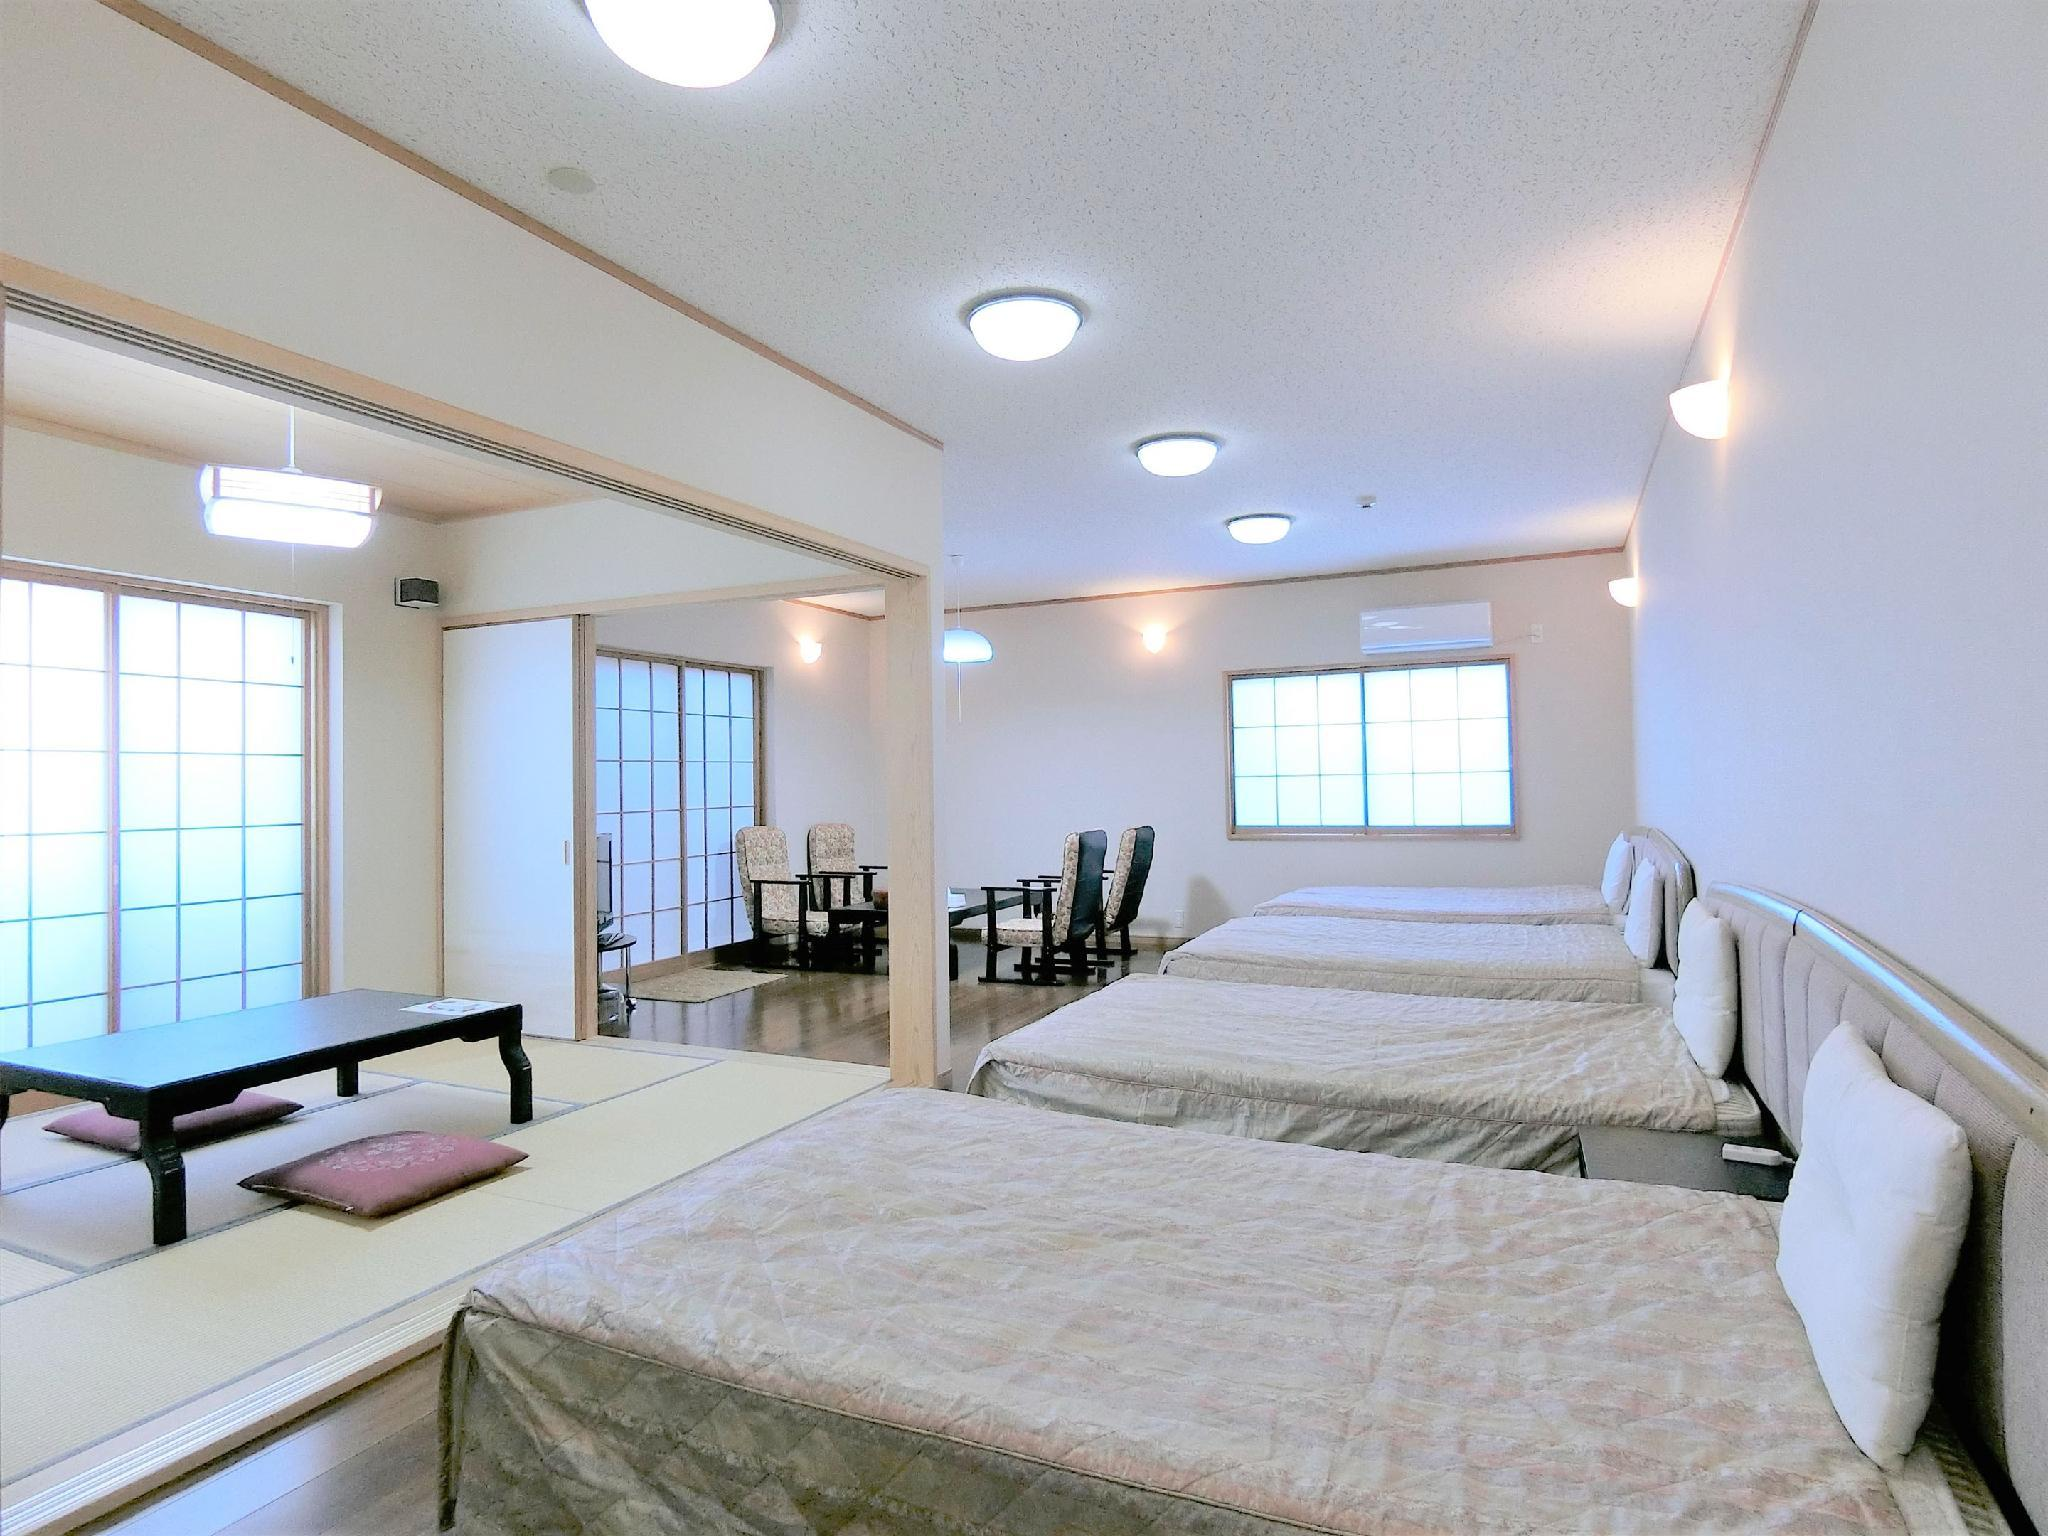 Japanese/Western-style Room (No. 205)